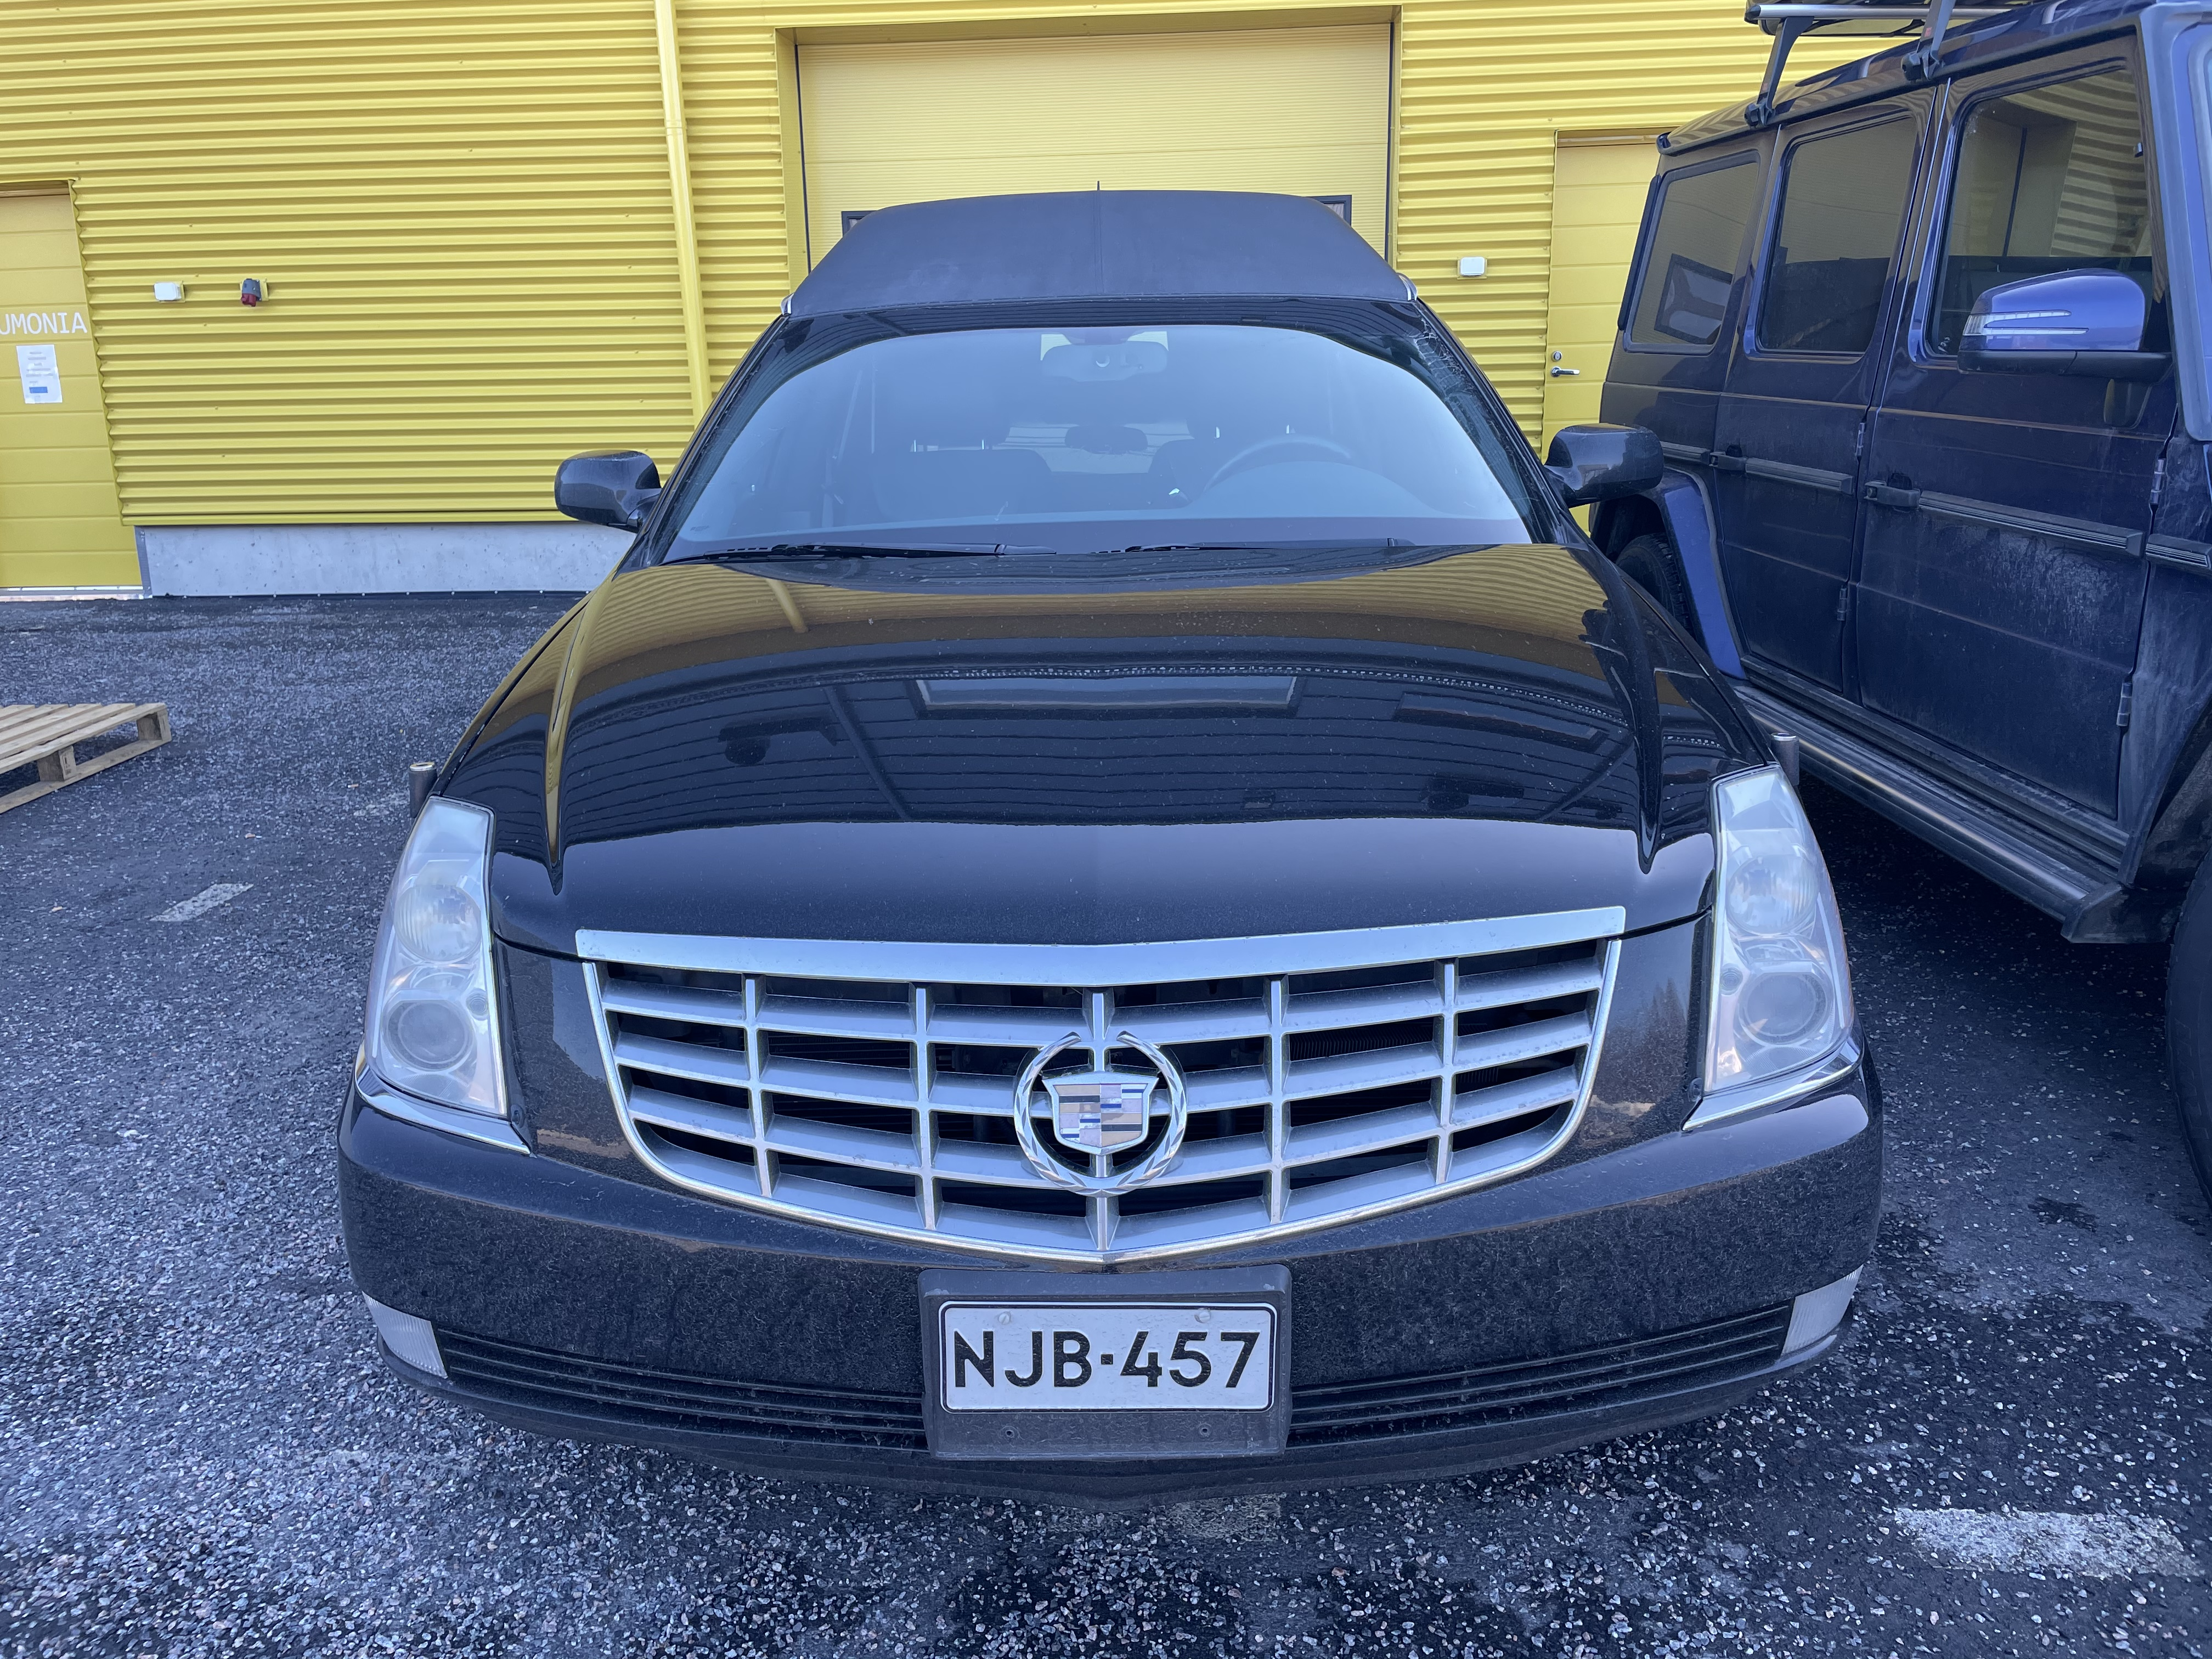 Cadillac DTS -Myyty-